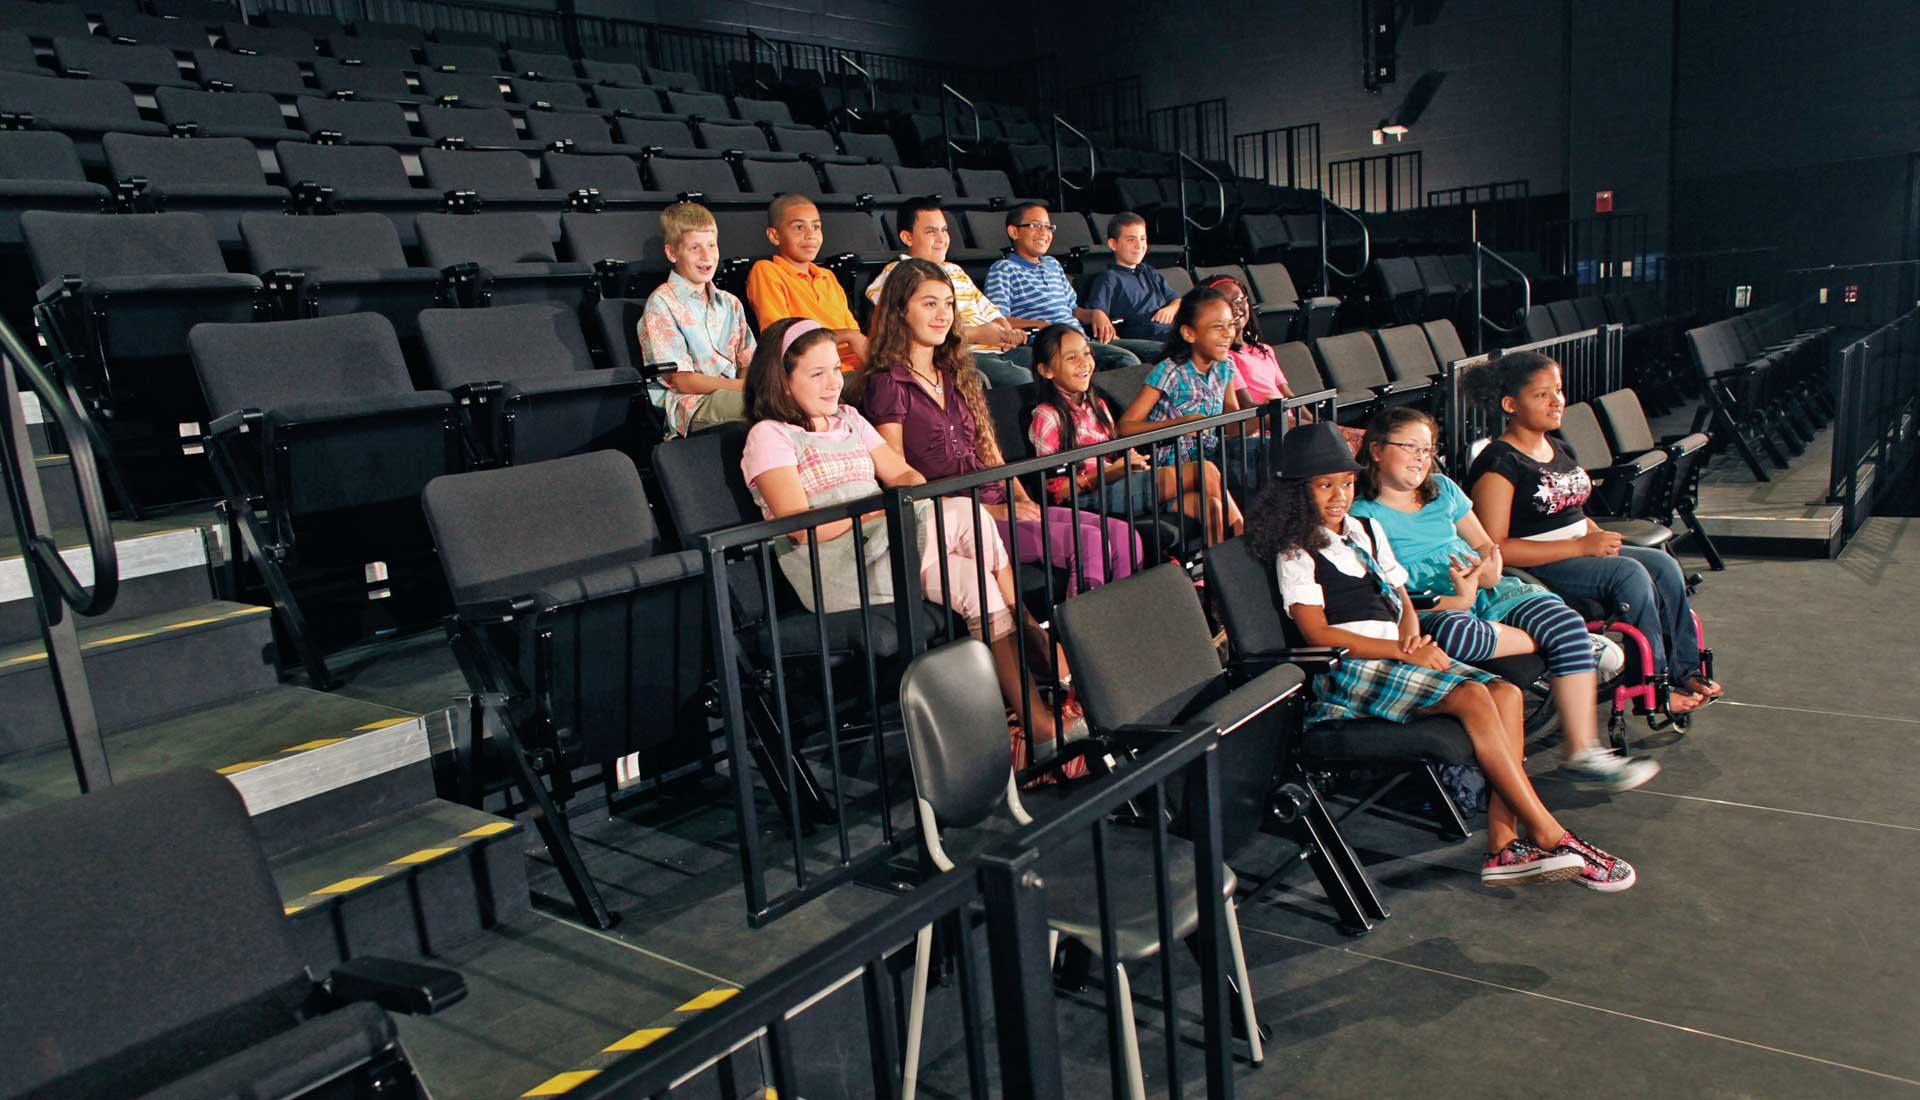 portable audience chairs